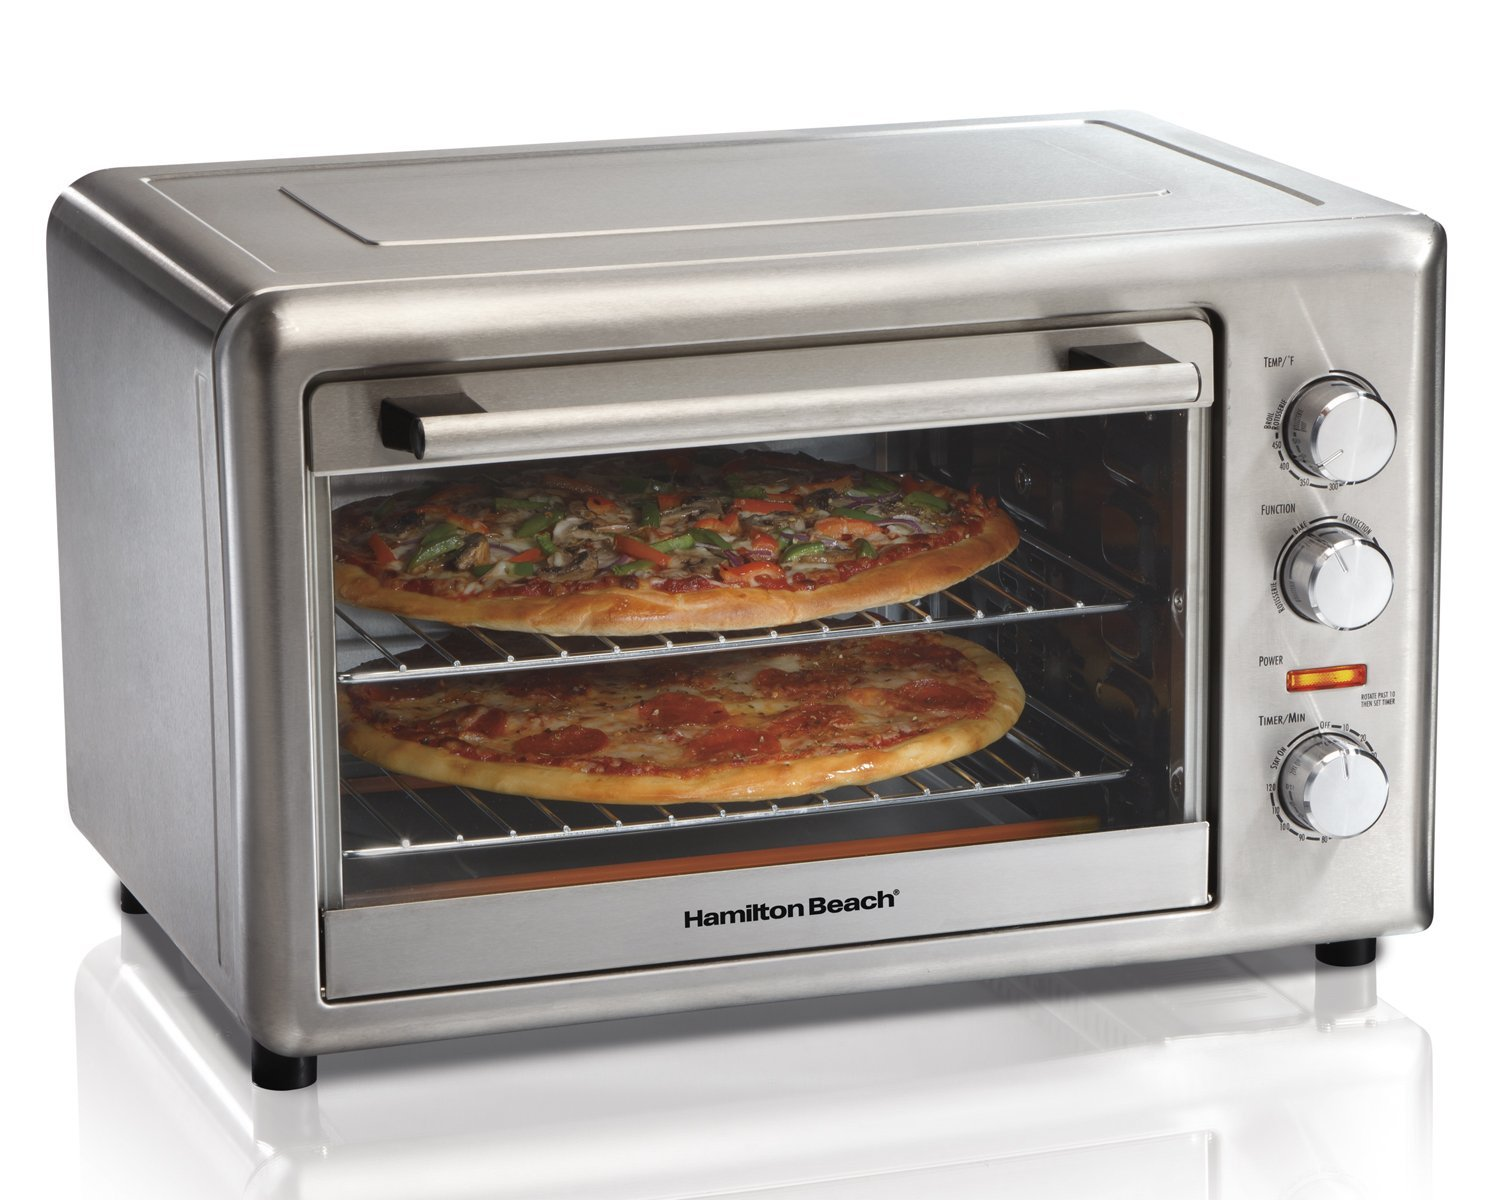 Top 10 Countertop Convection Oven Reviews The Best Of 2018